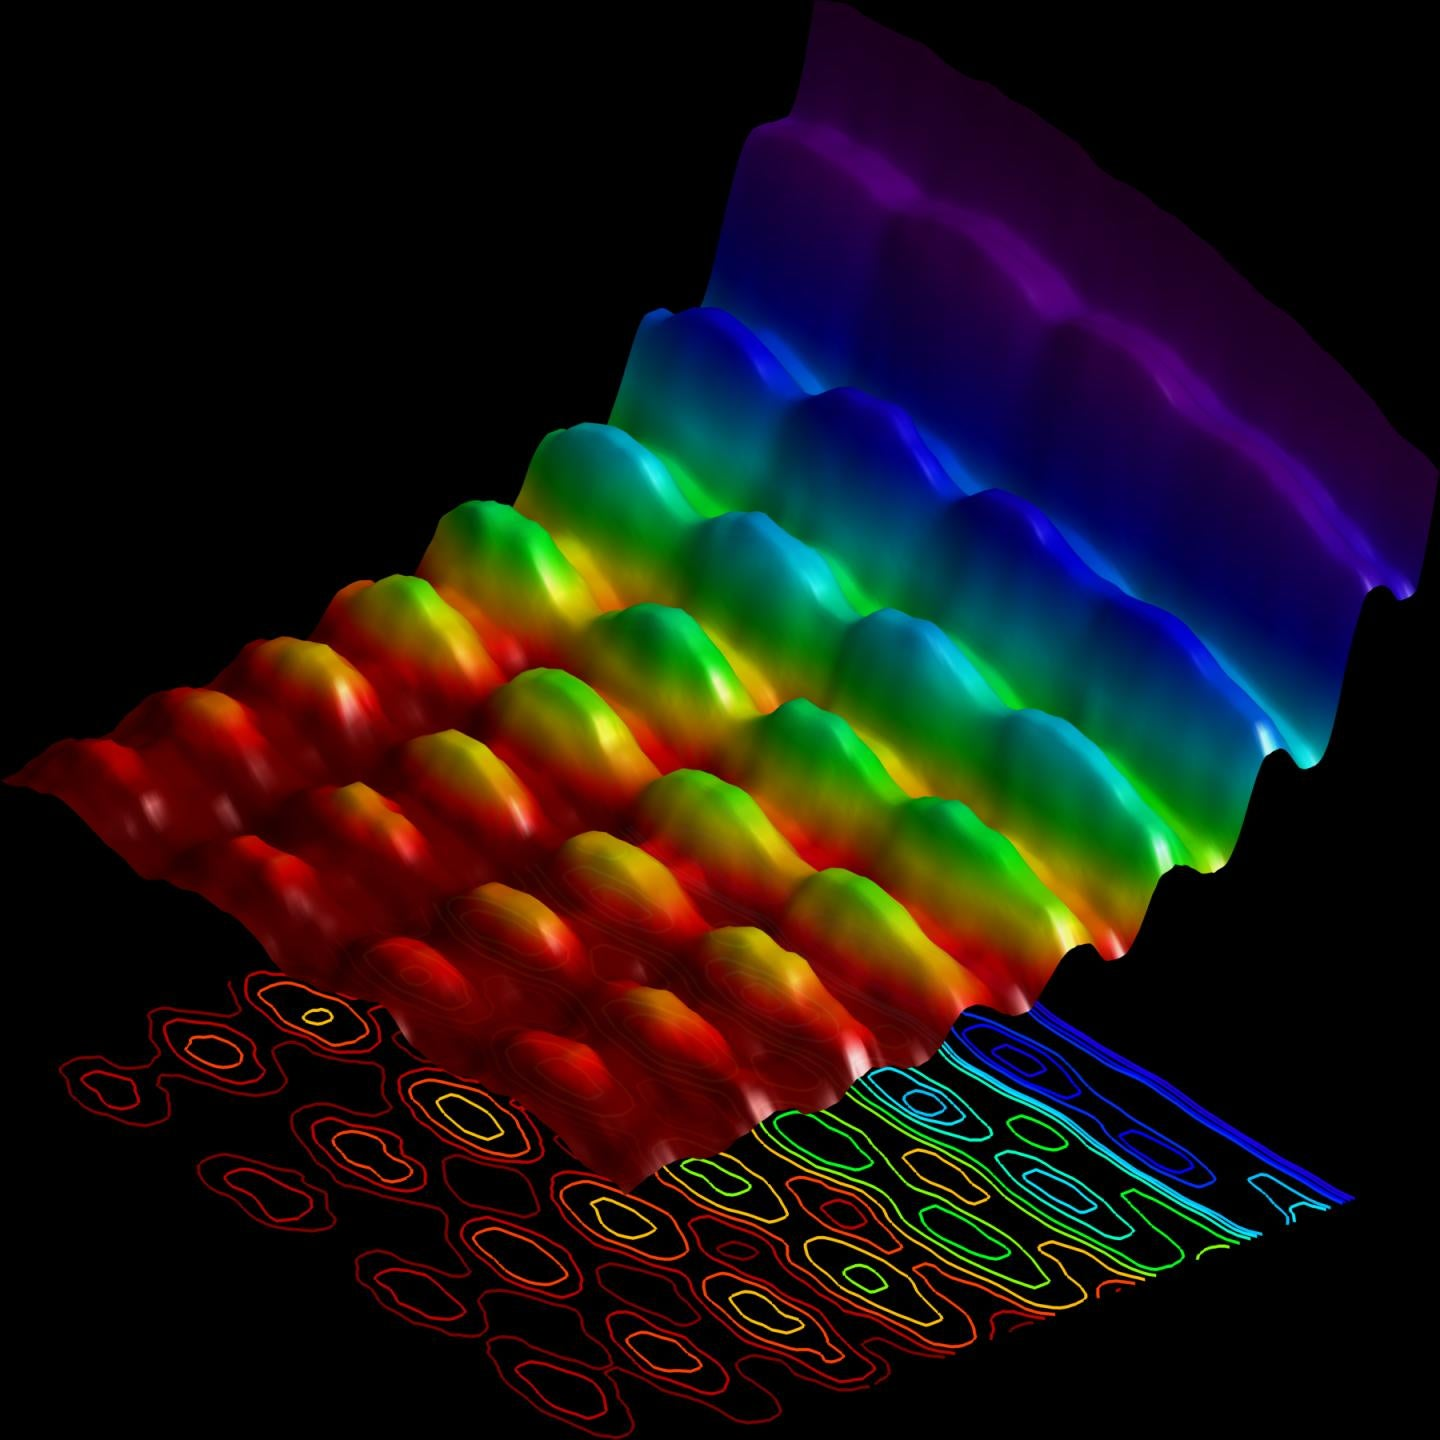 First Ever Image to Show Light as a Wave and Particle at the Same Time